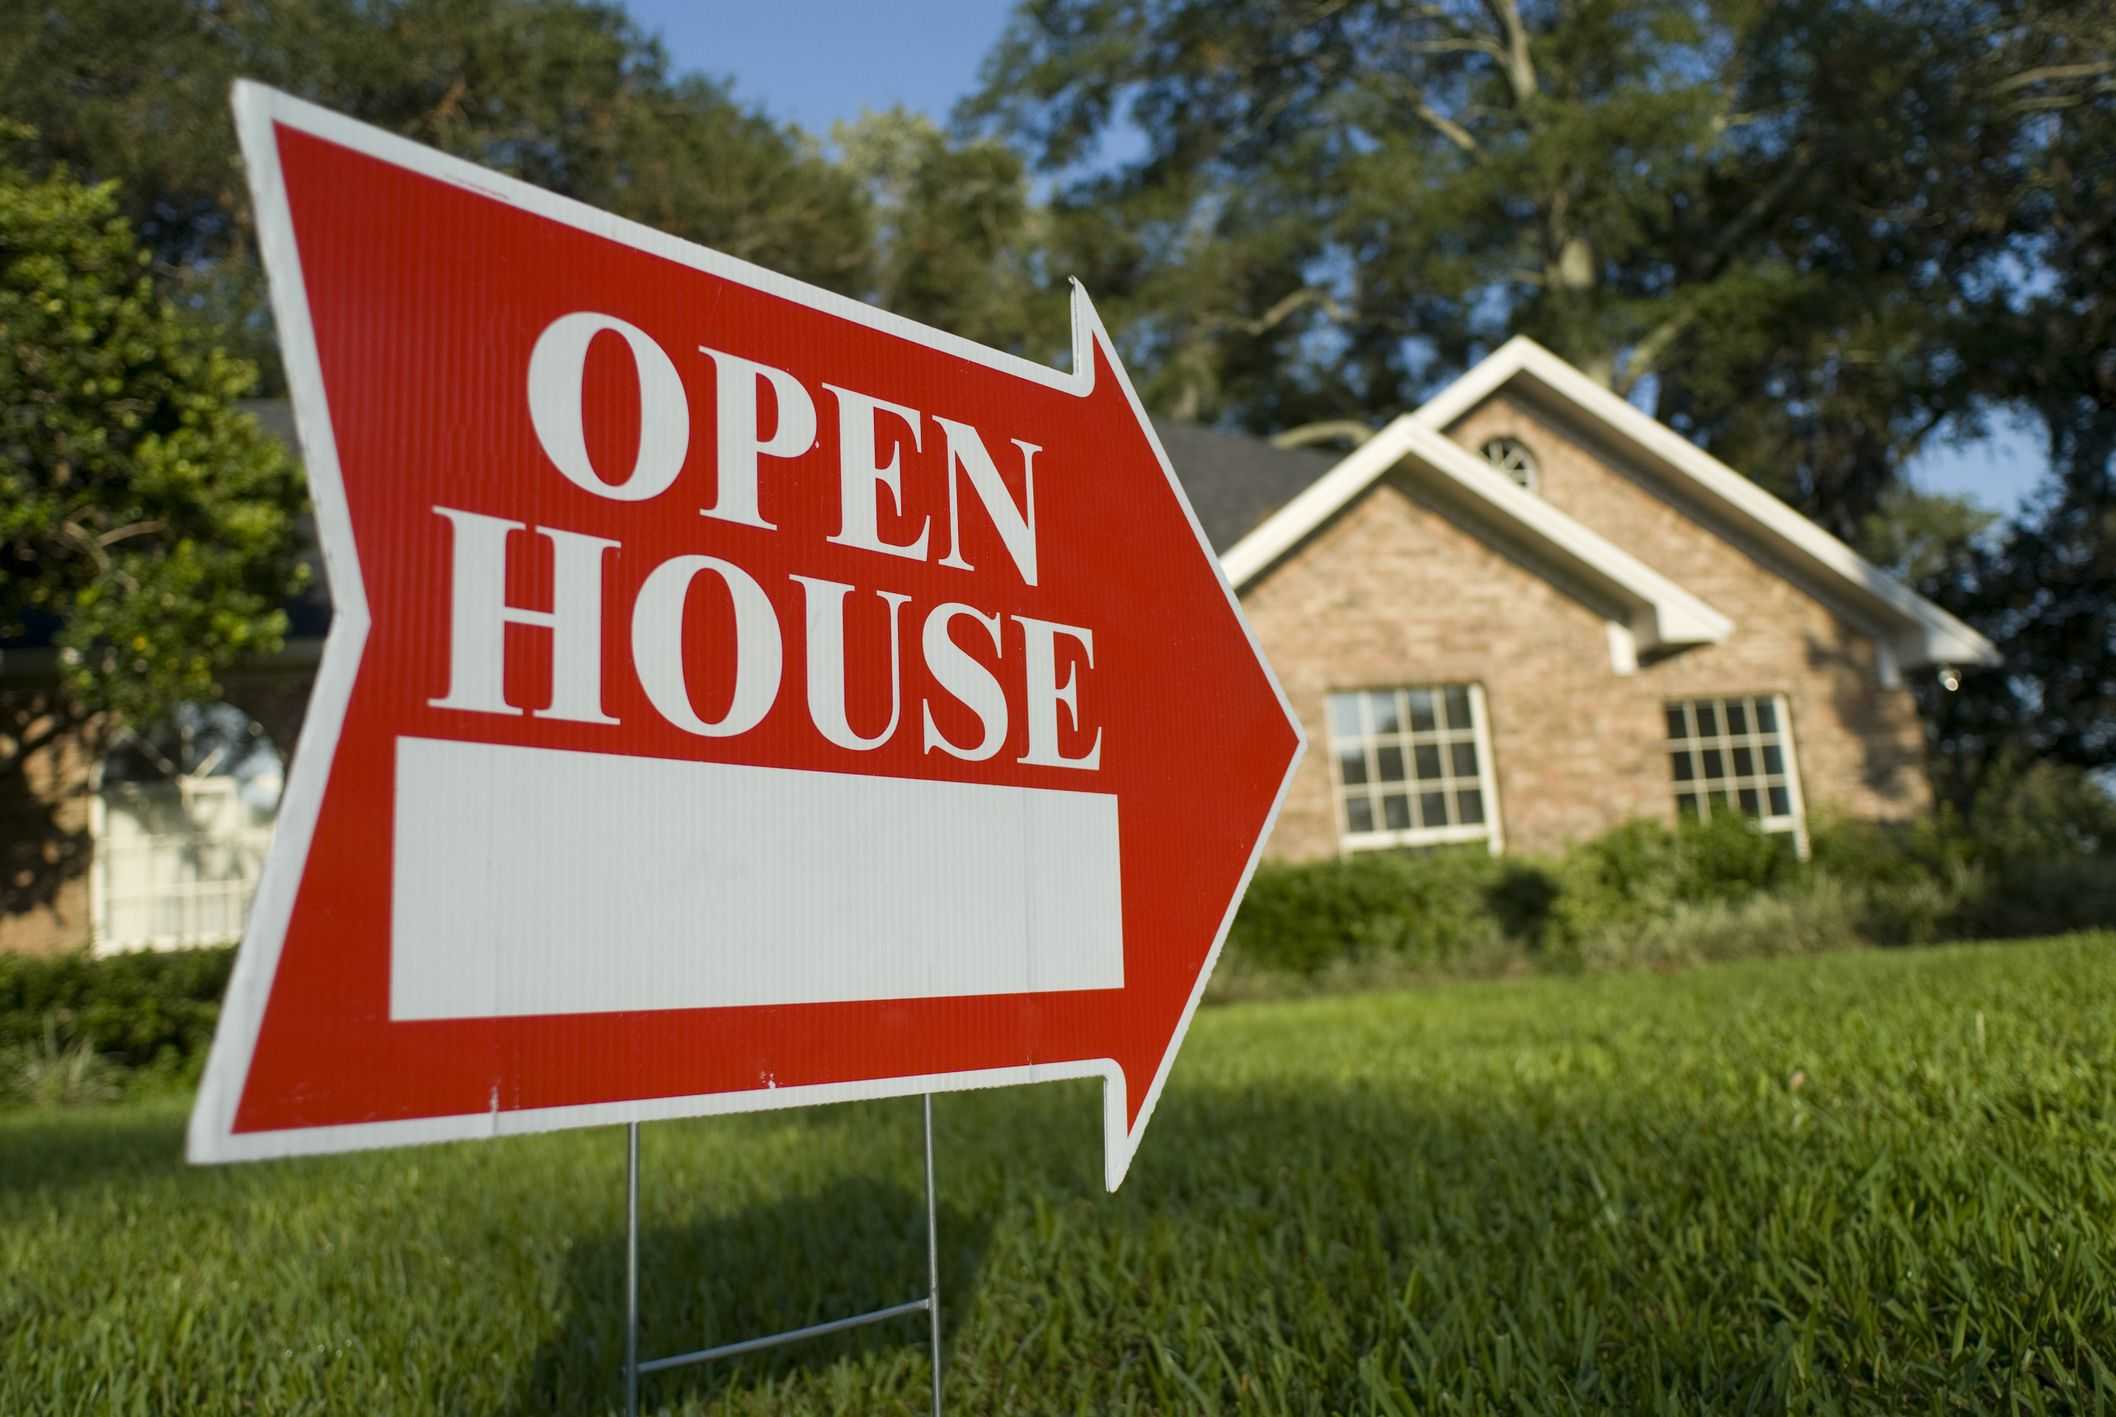 The Open House: Is It Worth It?